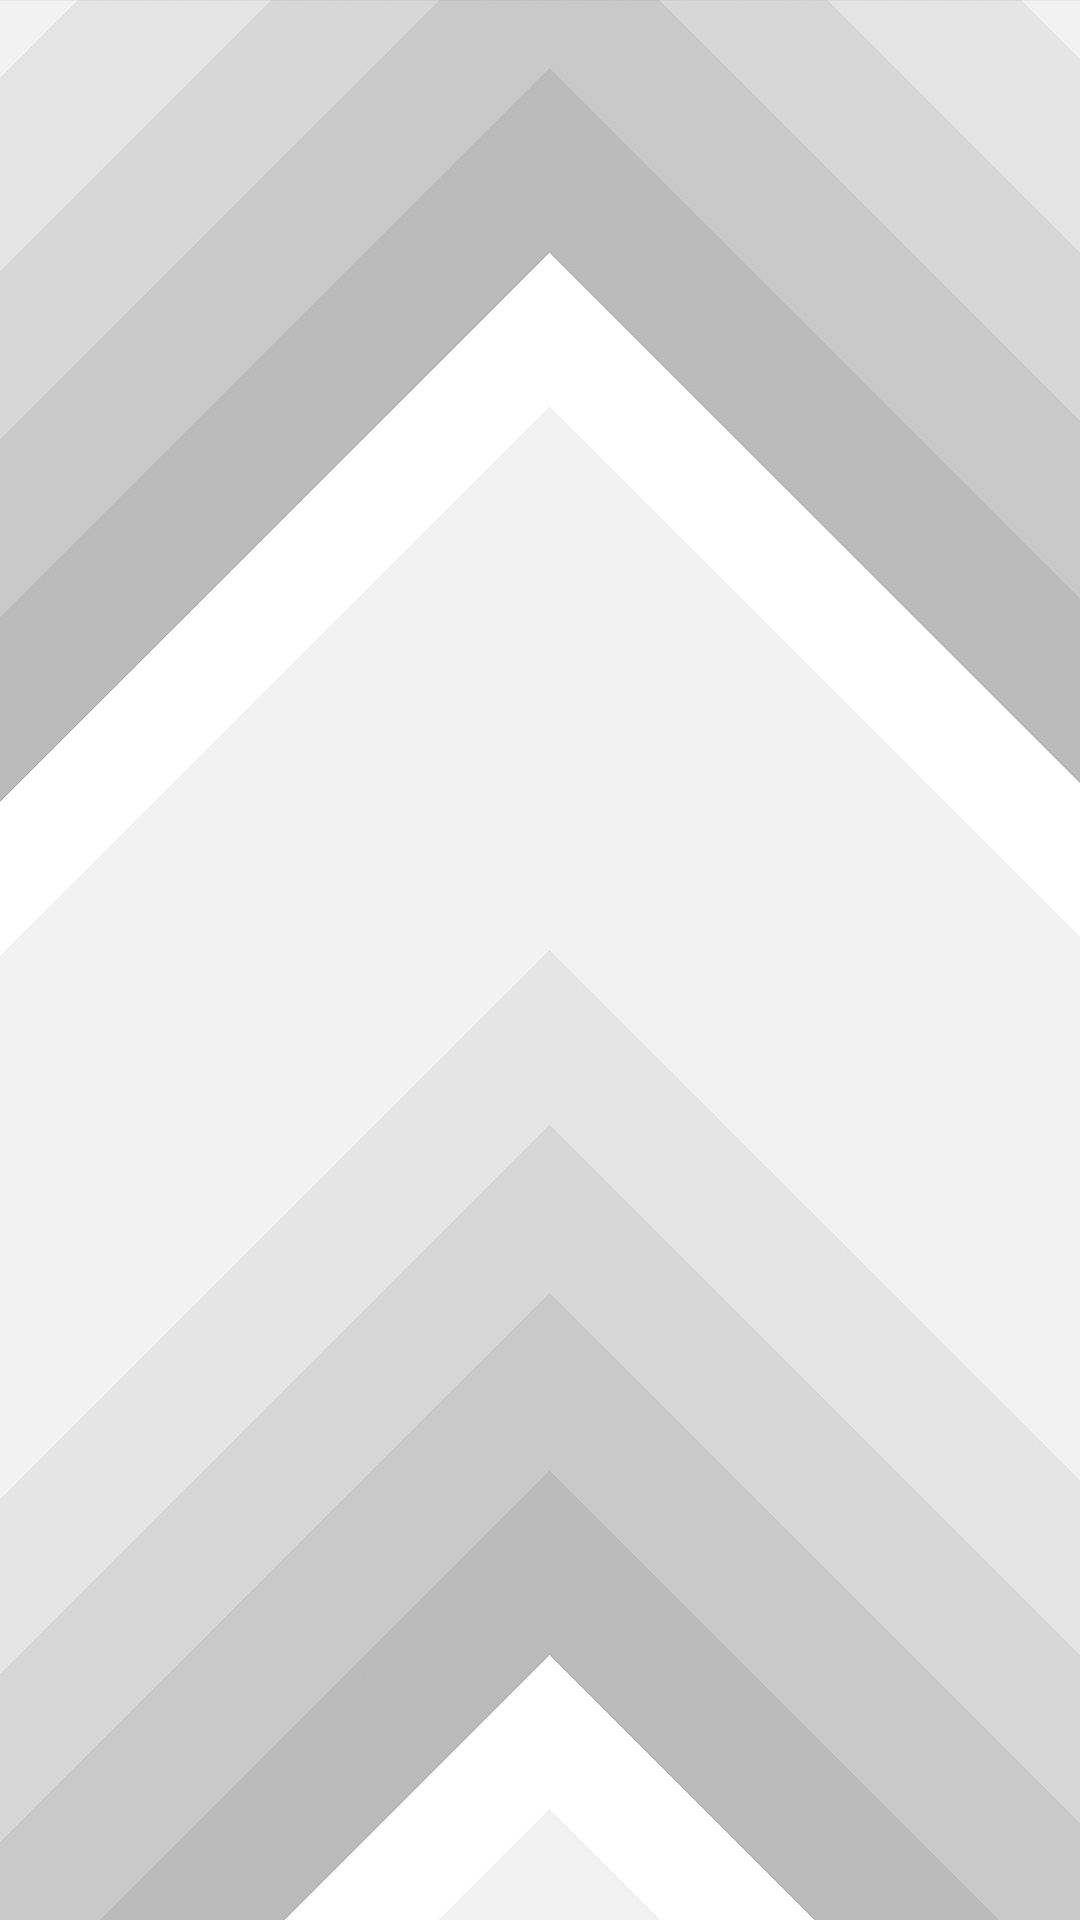 Beautiful Arrows Backgrounds in High Resolution